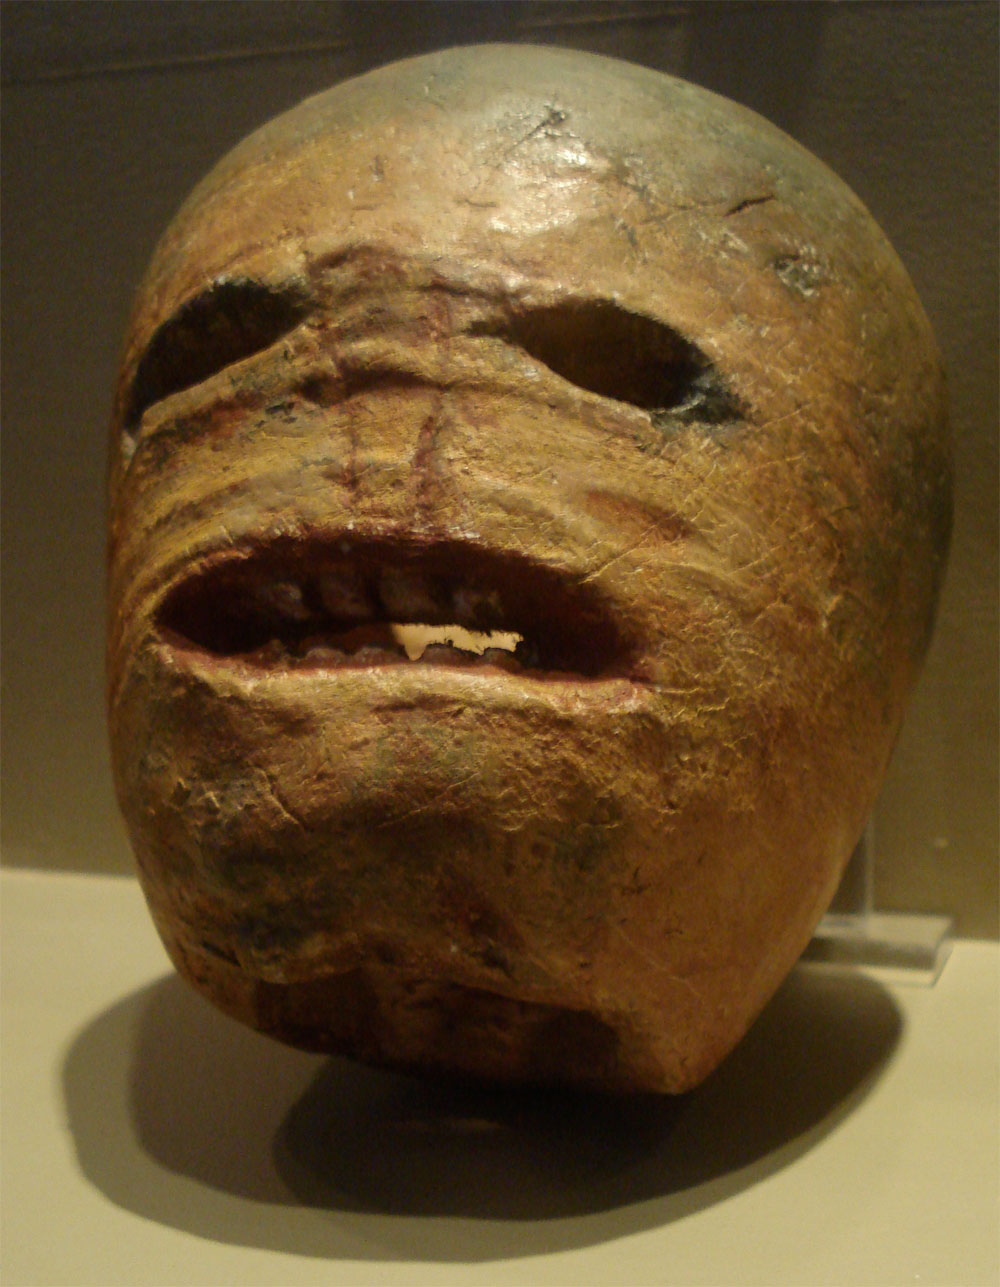 A traditional Irish Halloween turnip (rutabaga) lantern on display in the Museum of Country Life, Ireland